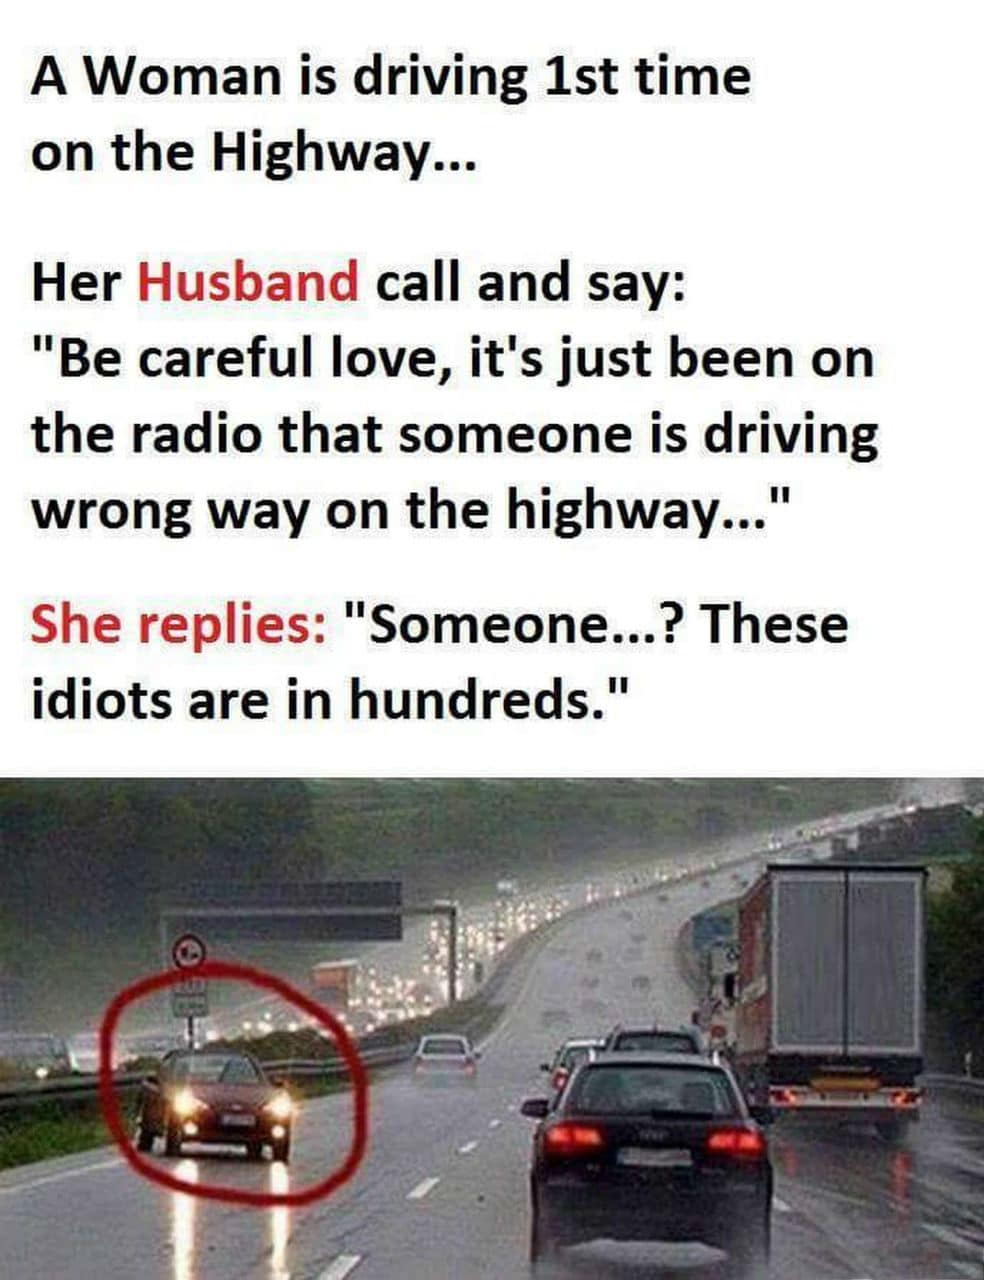 Woman Driving 1st Time Funny Meme